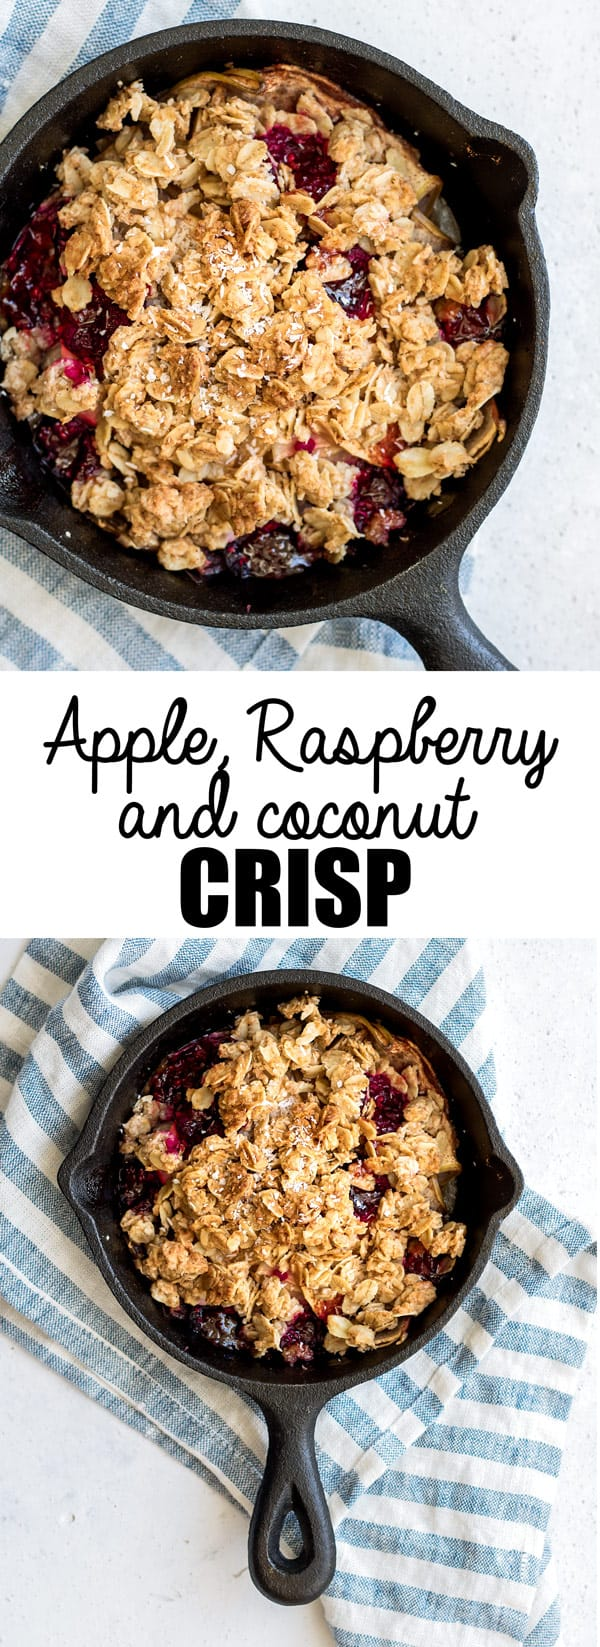 This apple, raspberry+coconut crisp is a healthy crisp that can even be enjoyed for breakfast. Apples get baked up with oozy raspberries then topped with a crumbly topping of oats and shredded coconut!